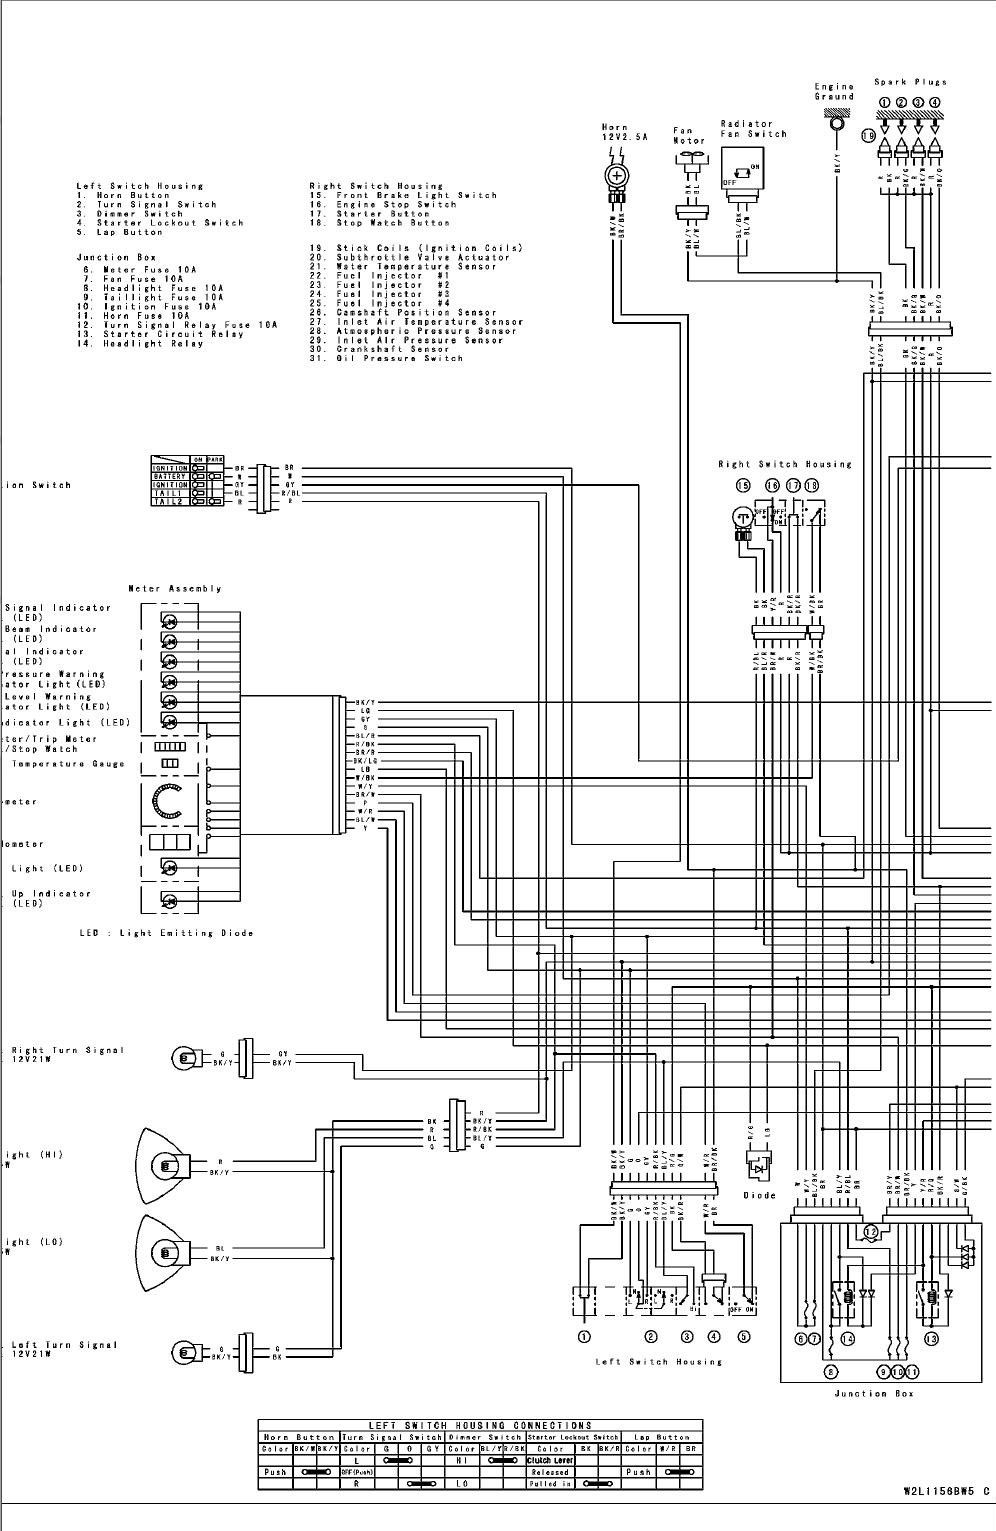 2003 z1000 wiring diagram download wiring diagrams u2022 rh sleeperfurniture co kawasaki z1000sx wiring diagram